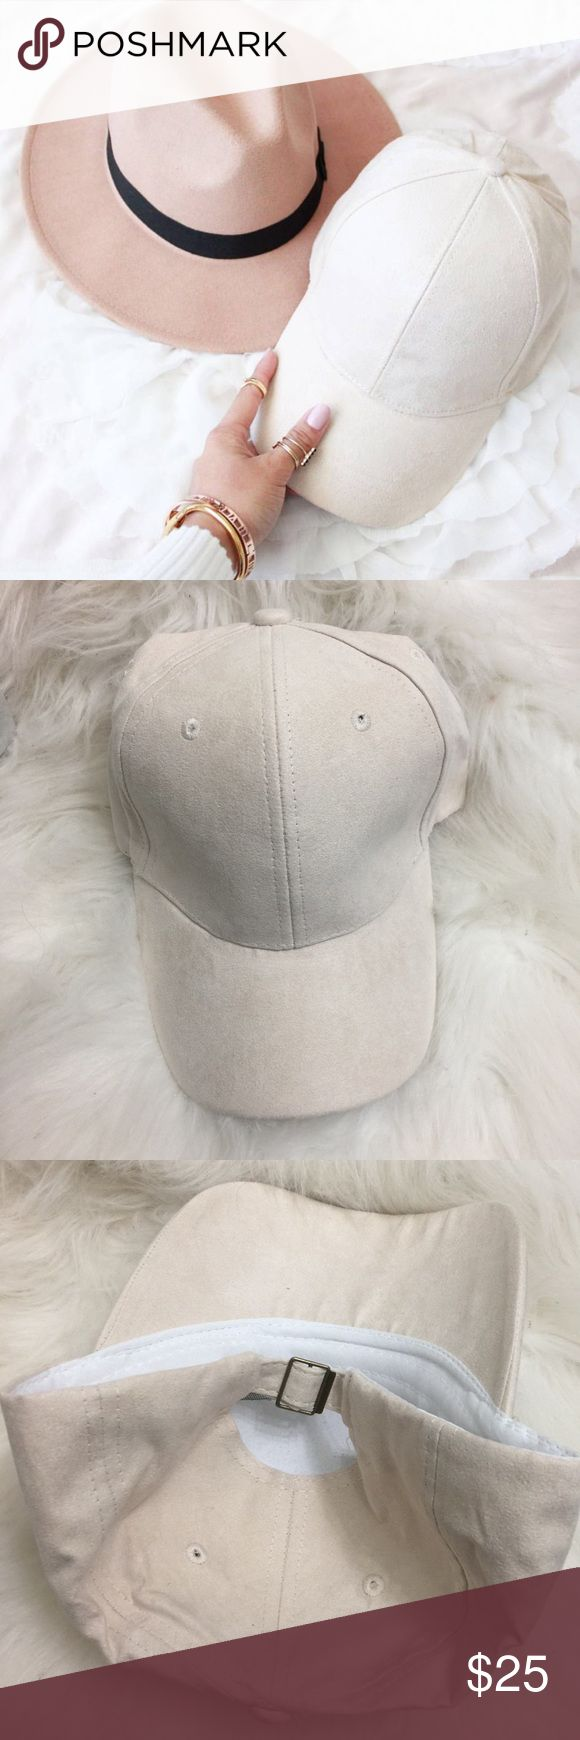 ✨NWOT✨ Faux Suede Tan Cap Faux suede cream/tan colored cap. Classic baseball cap with a soft faux suede texture. Adjustable buckle in back. One size fits all. Available in Light tan/cream color. Brand listed for exposure. NWOT 👈🏽  100% Cotton, Made in China Zara Accessories Hats